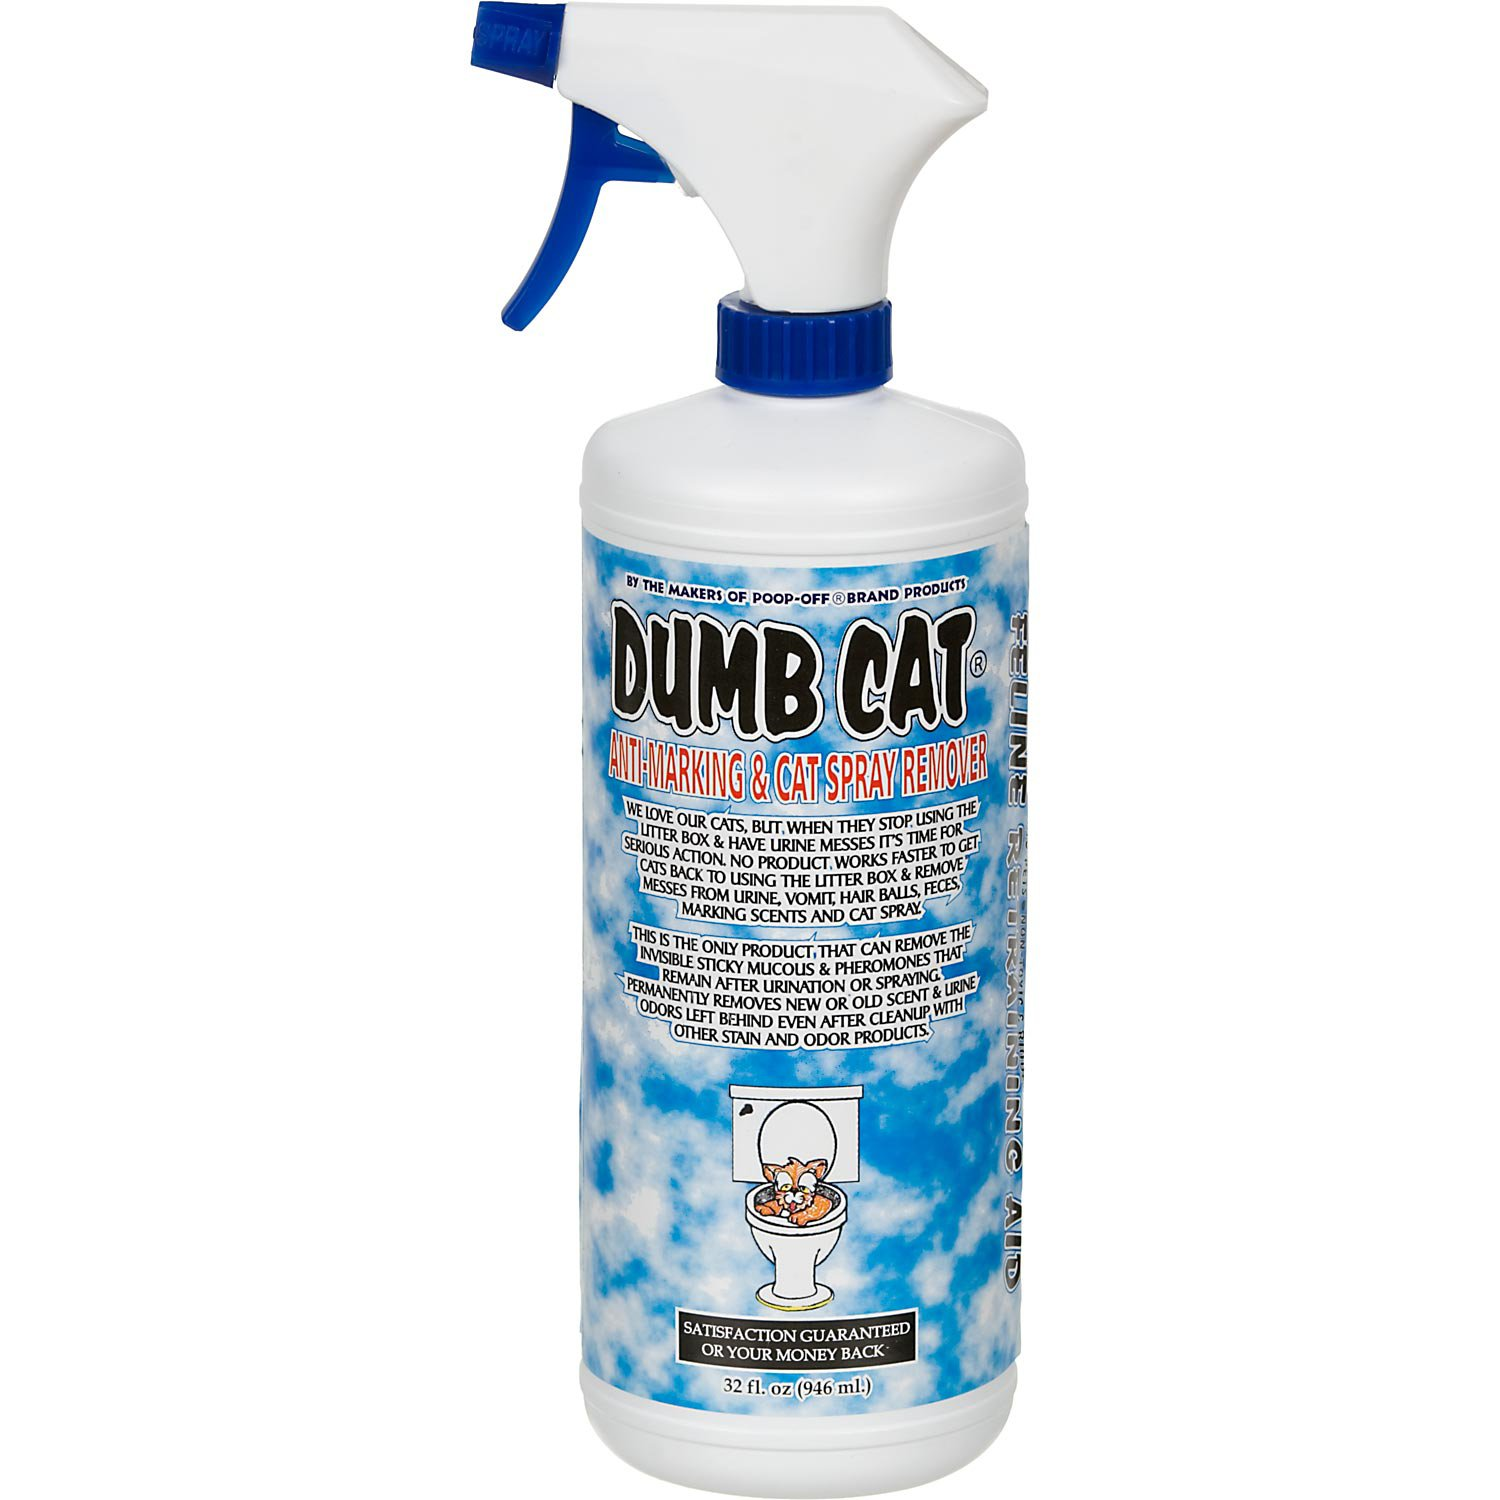 Dumb Cat Anti-Marking & Cat Spray Remover